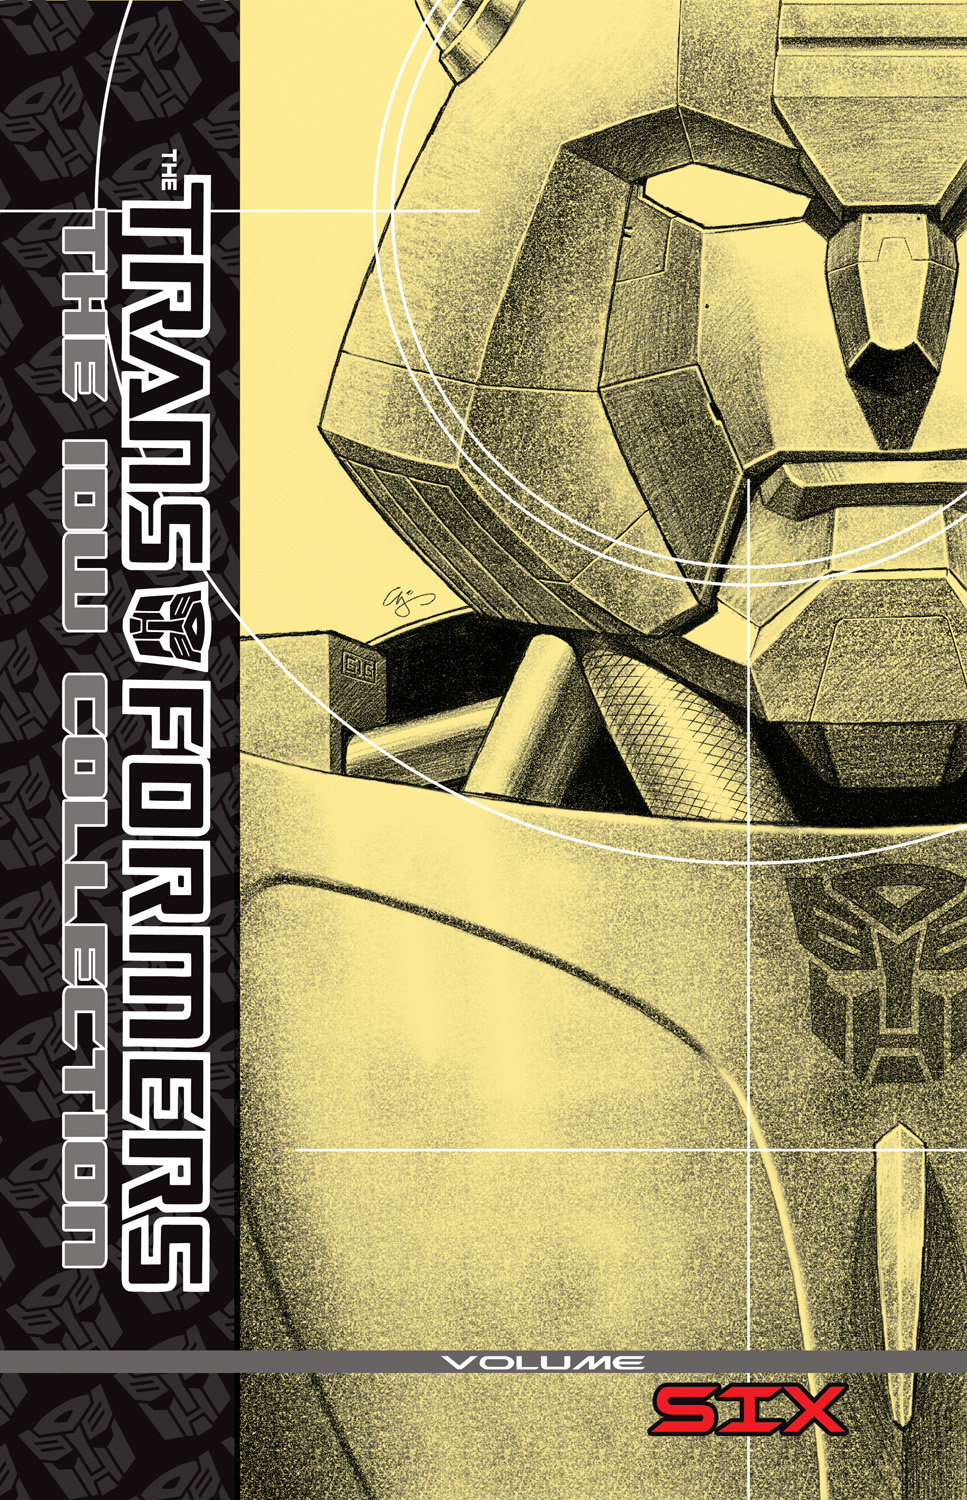 transformers-comics-the-idw-collection-volume-6_1327294230